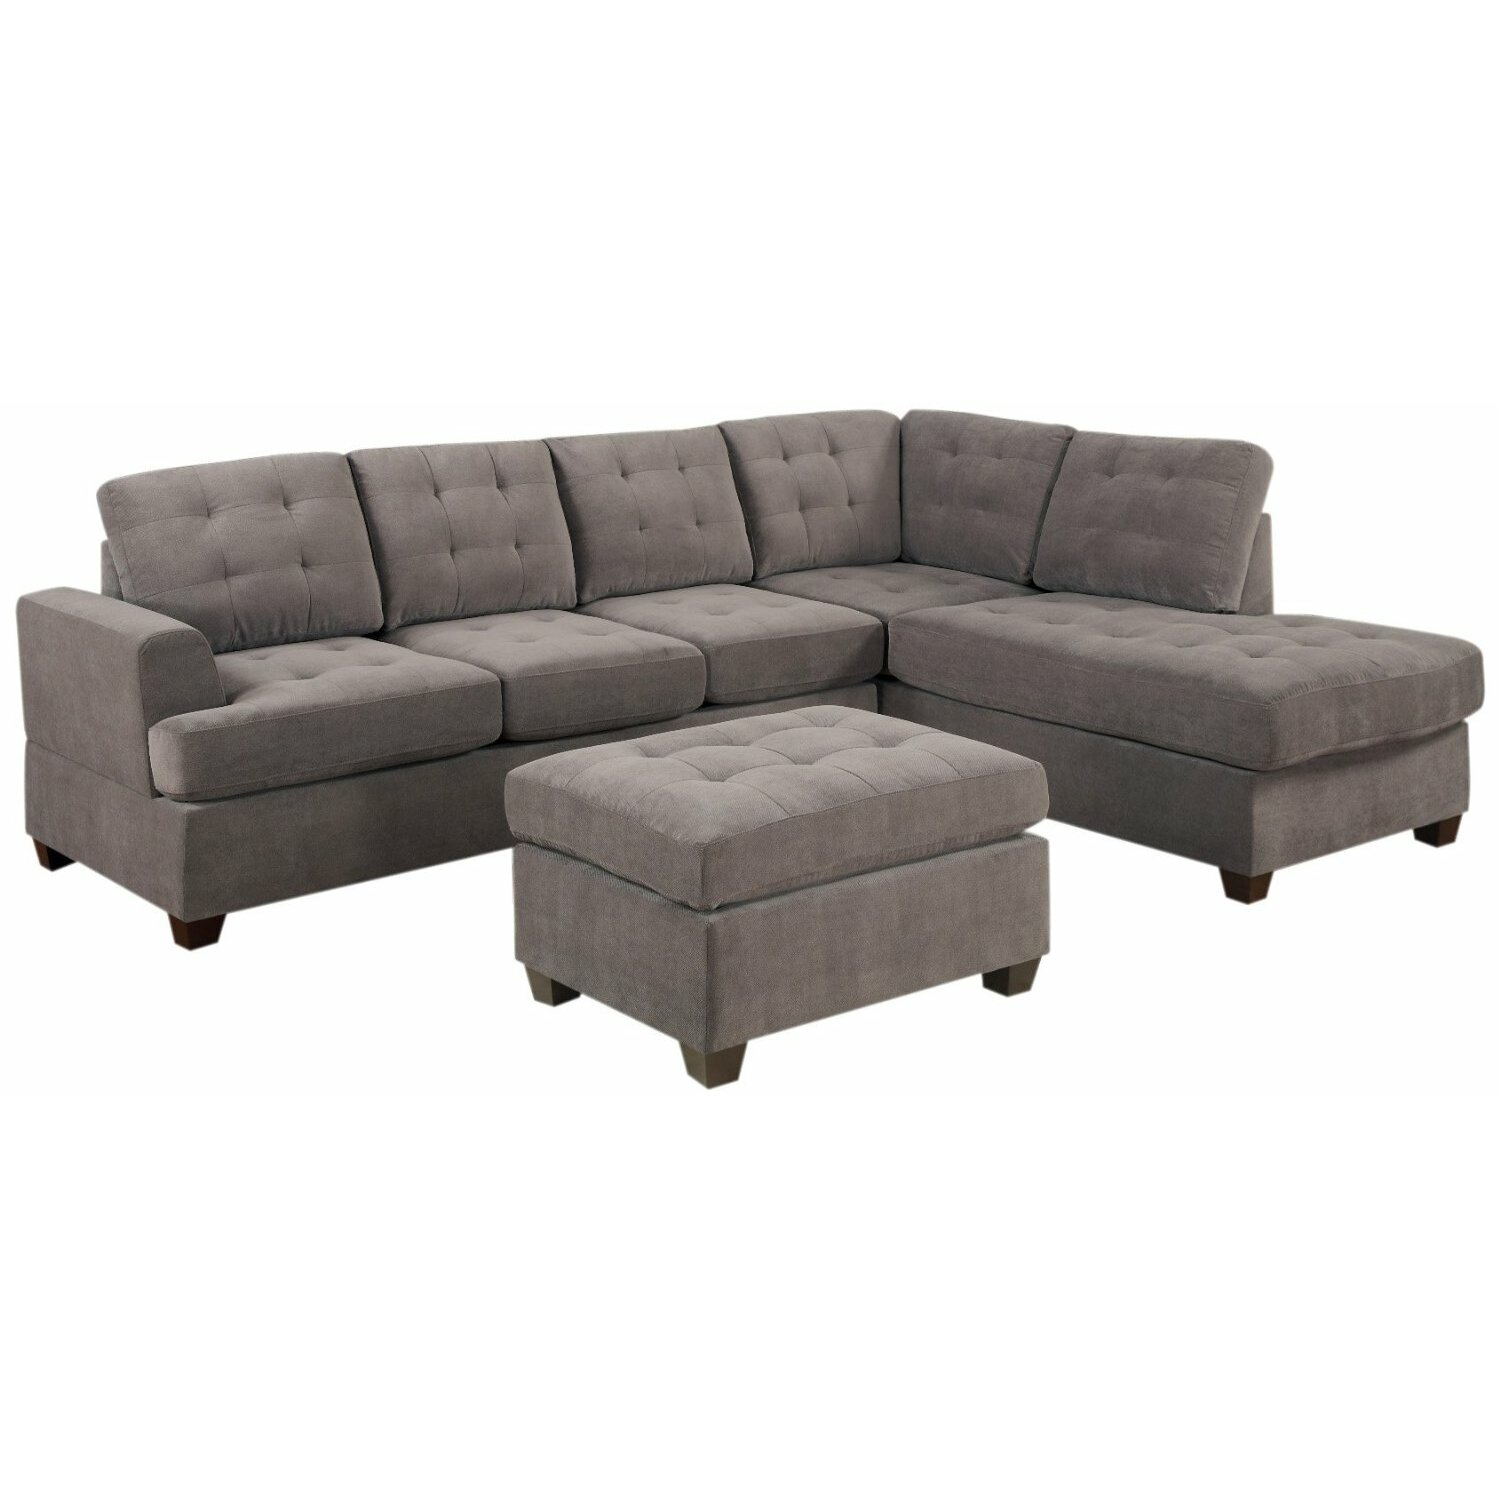 Red Barrel Studio Old Rock Reversible Chaise Sectional